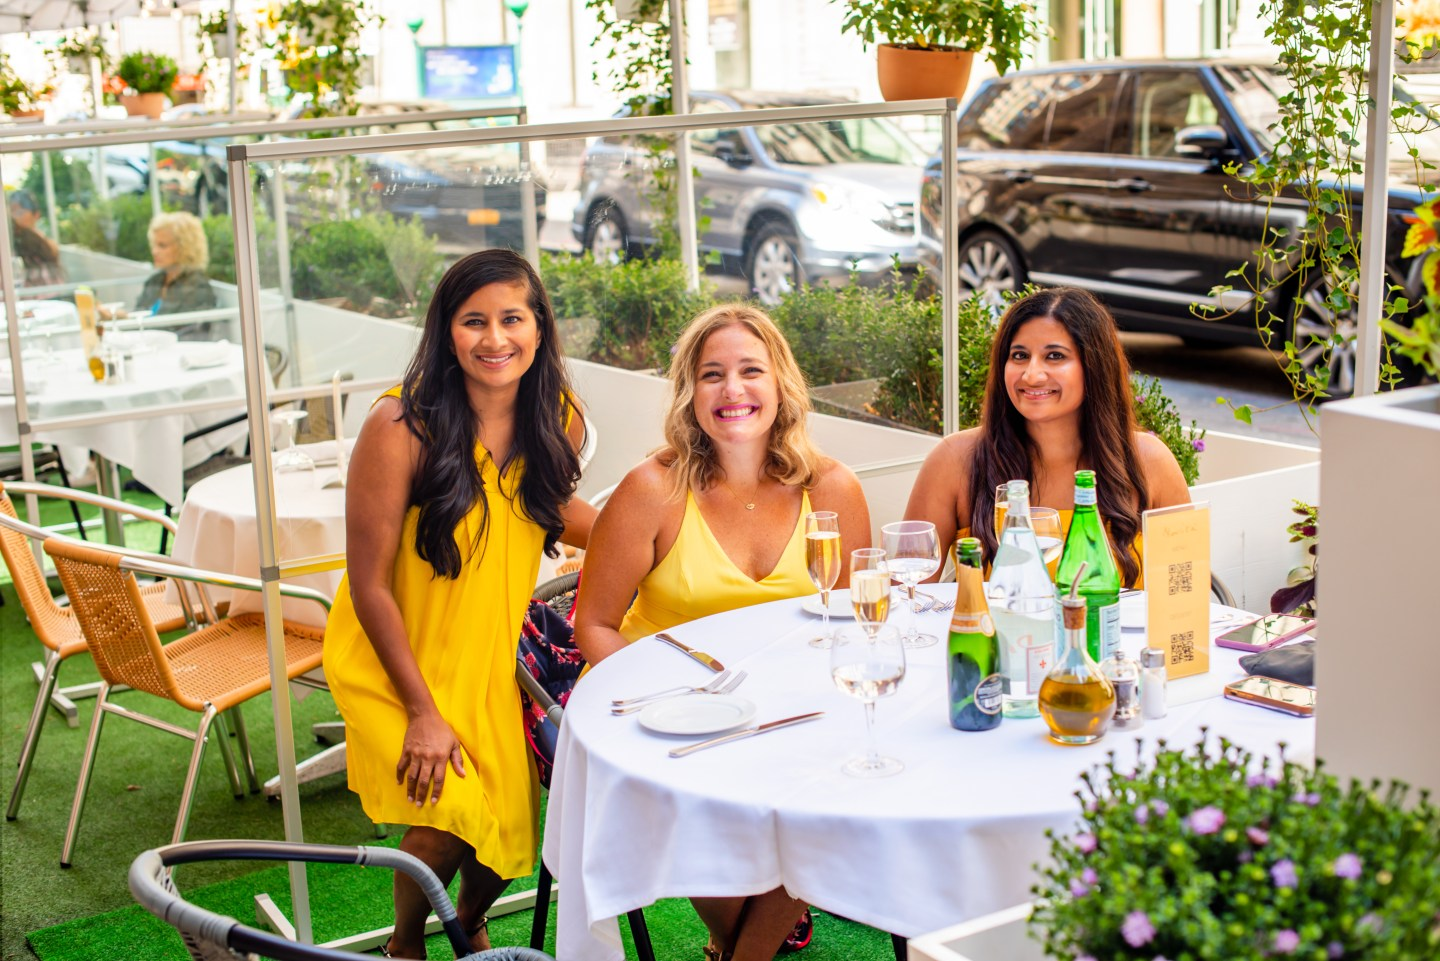 NYC Restaurants with Beautiful Outdoor Dining